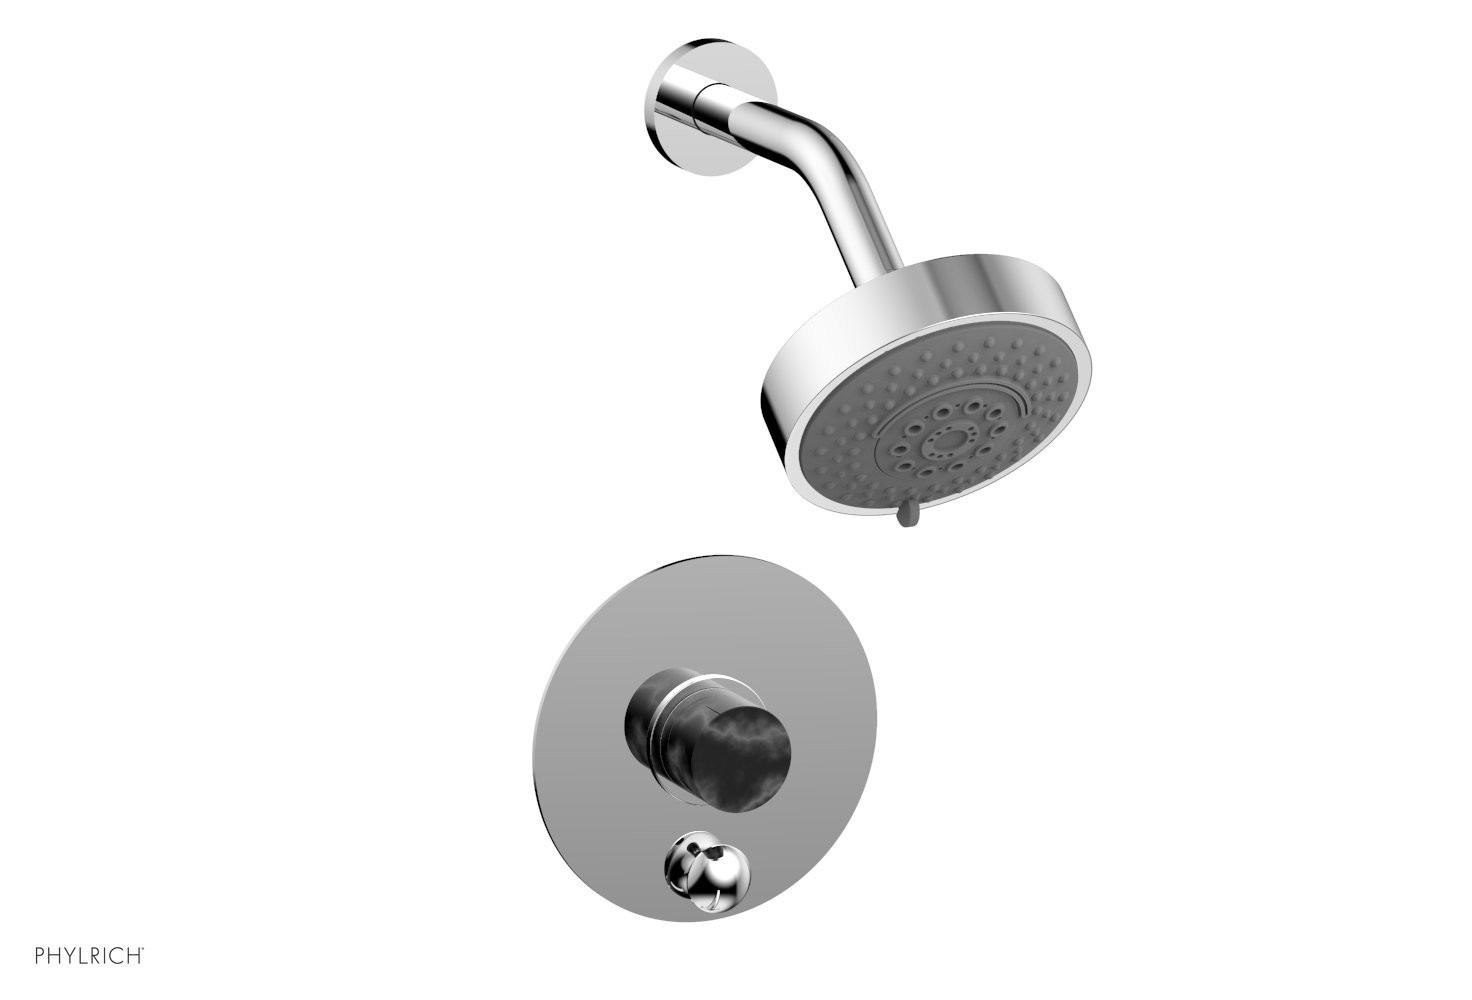 PHYLRICH 4-190-032 BASIC II WALL MOUNT PRESSURE BALANCE SHOWER AND DIVERTER SET WITH SOAP STONE LEVER HANDLE